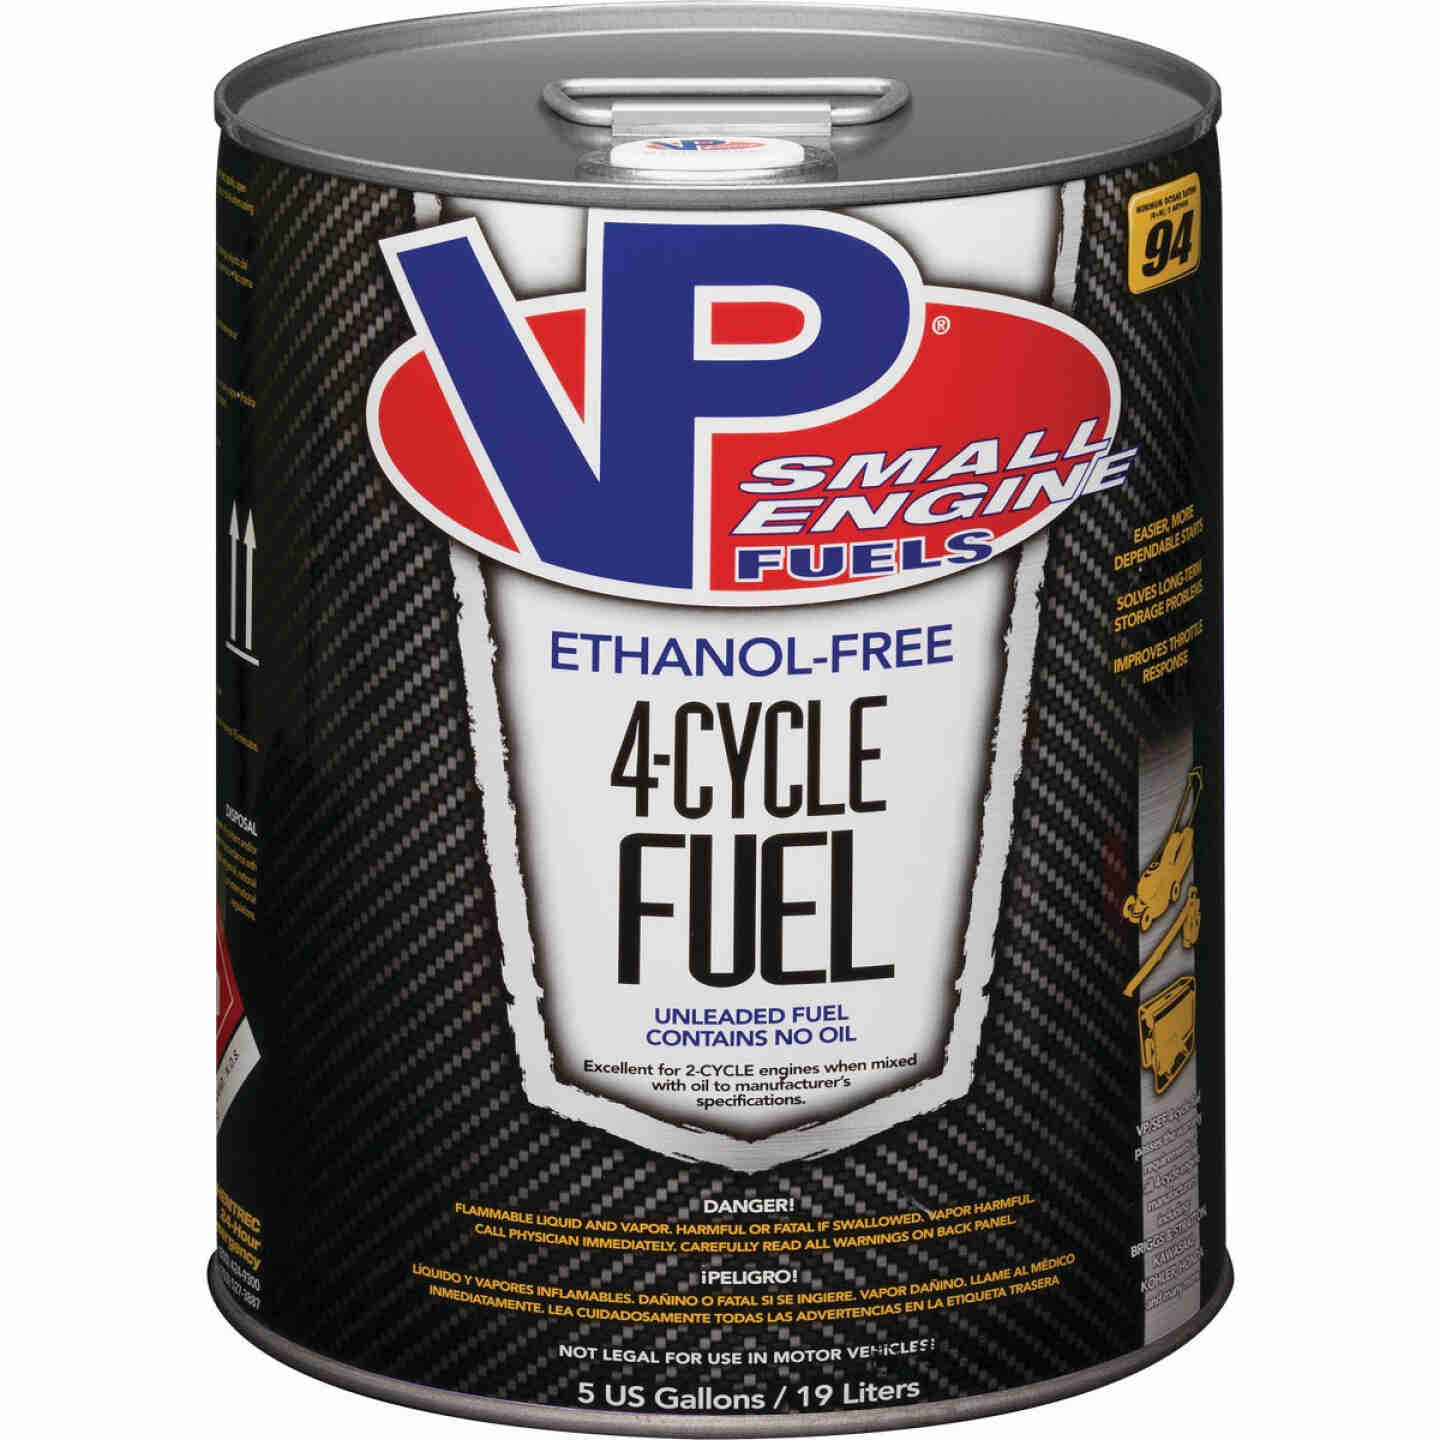 VP Small Engine Fuels 5 Gal. Ethanol-Free 4-Cycle Fuel Image 1